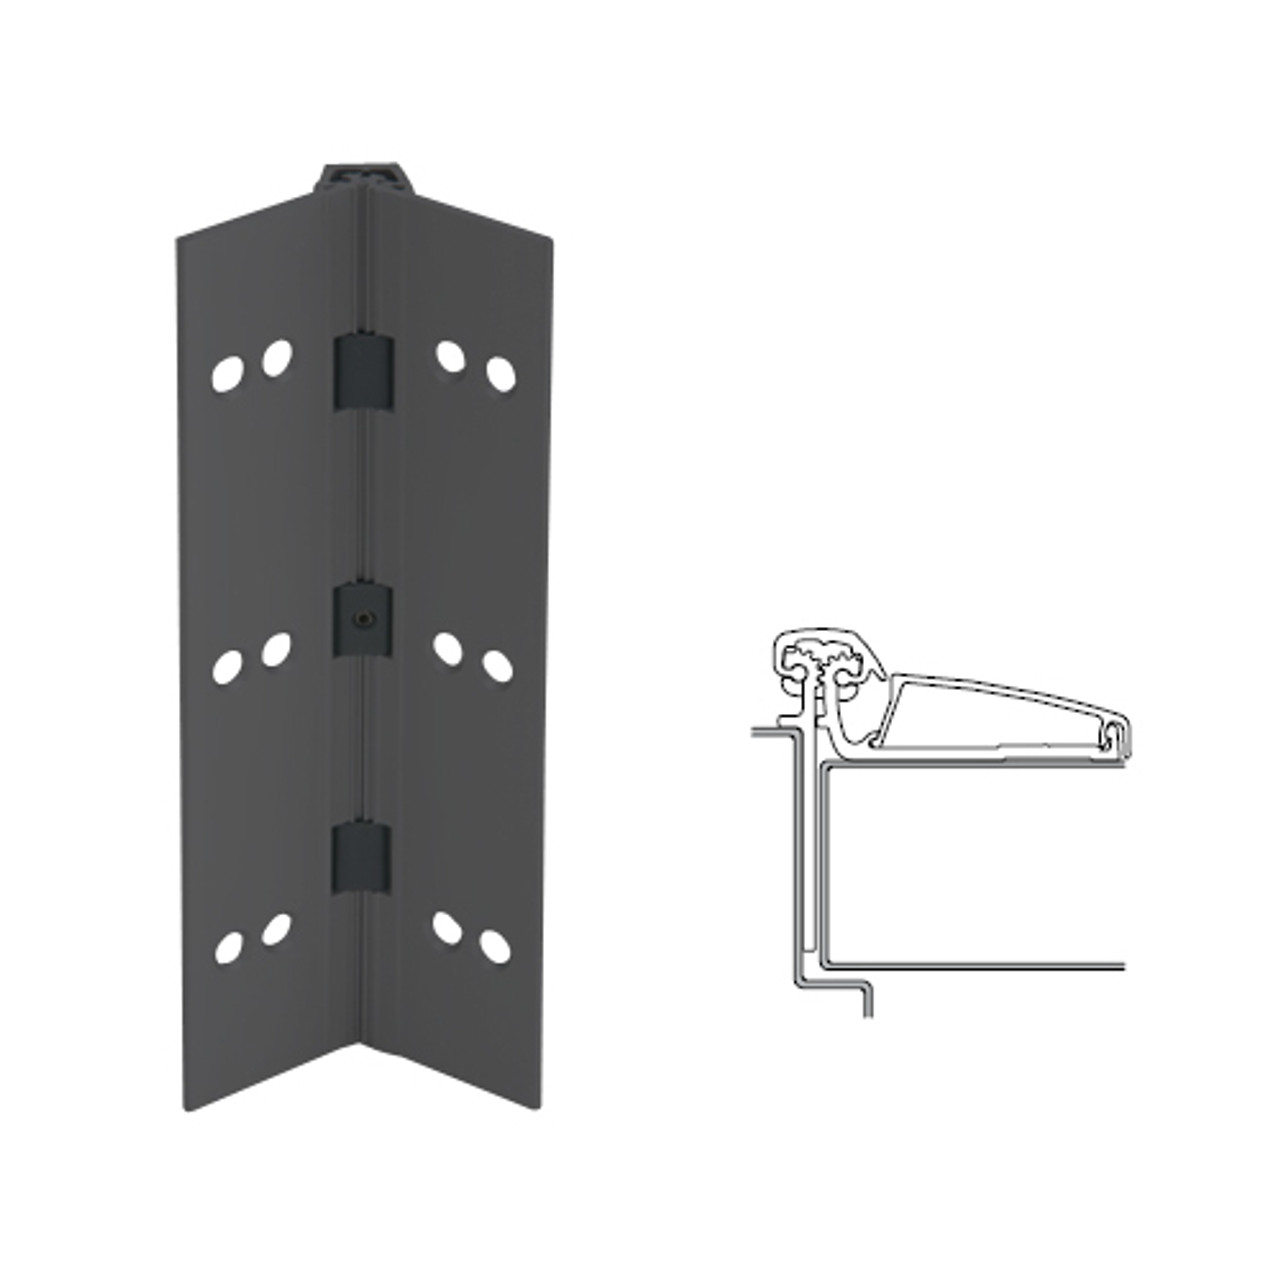 046XY-315AN-95-TF IVES Adjustable Half Surface Continuous Geared Hinges with Thread Forming Screws in Anodized Black